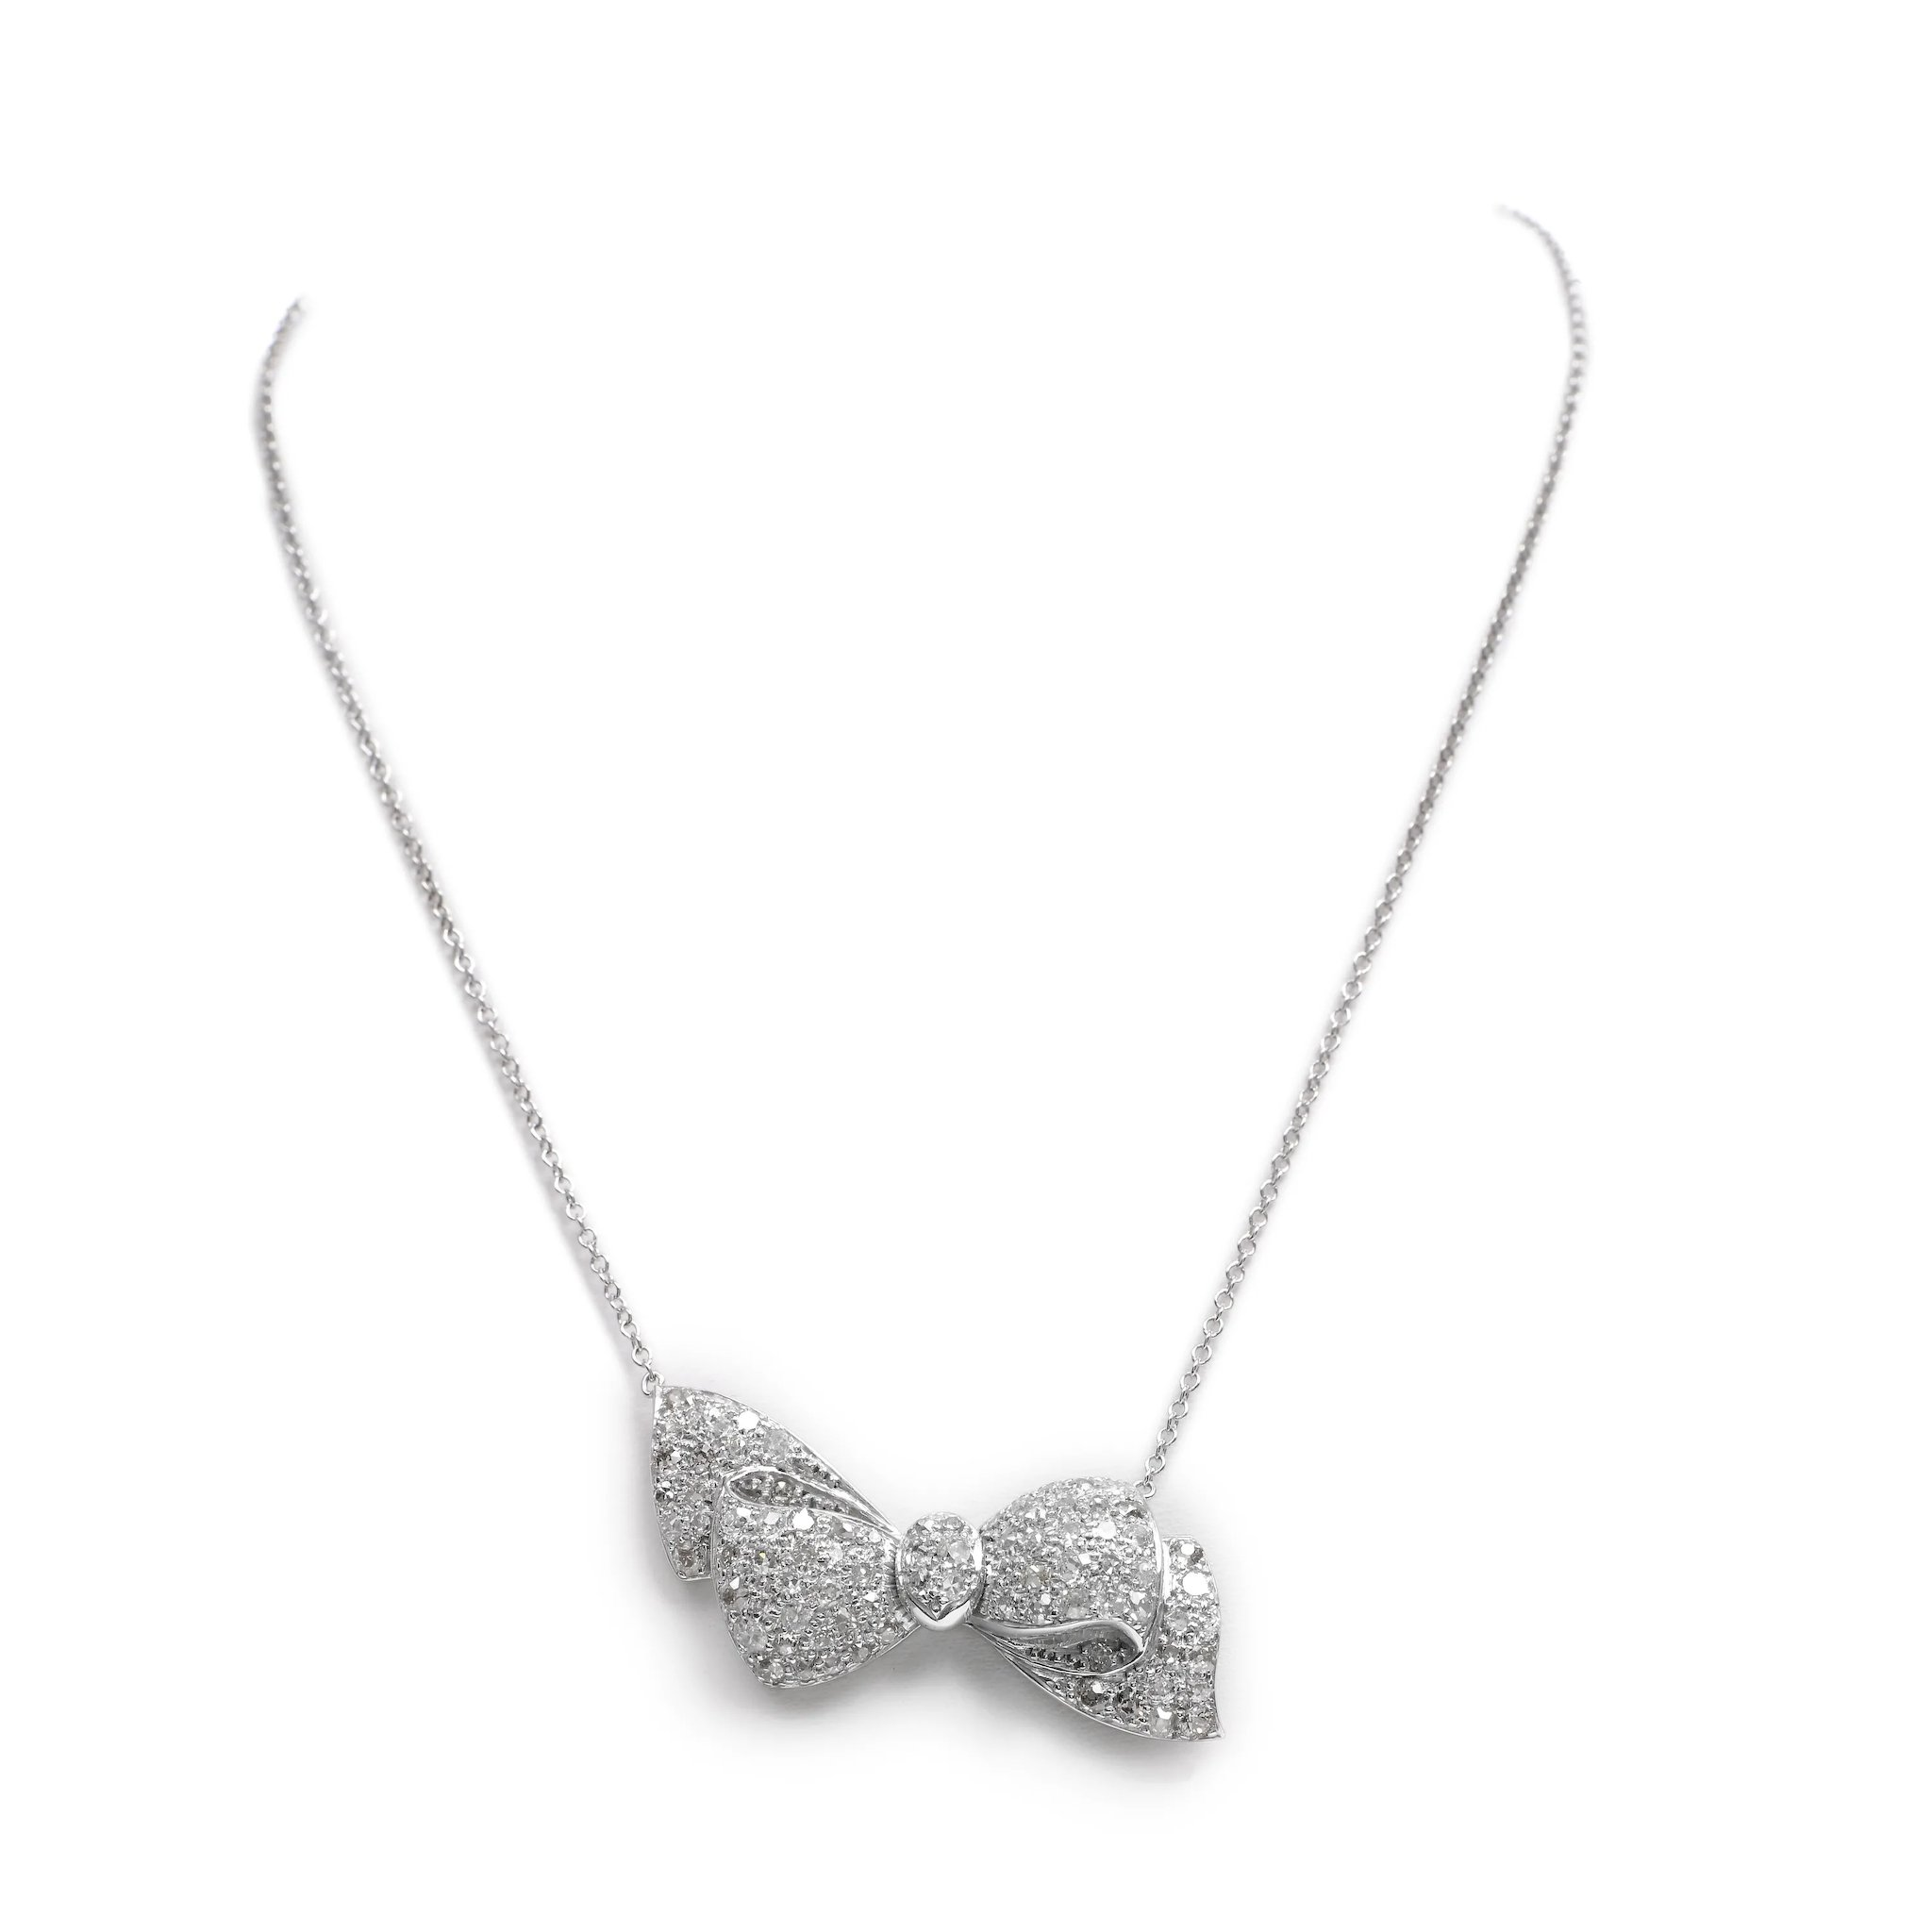 motif a necklace open diamond bow featuring pav collections graff